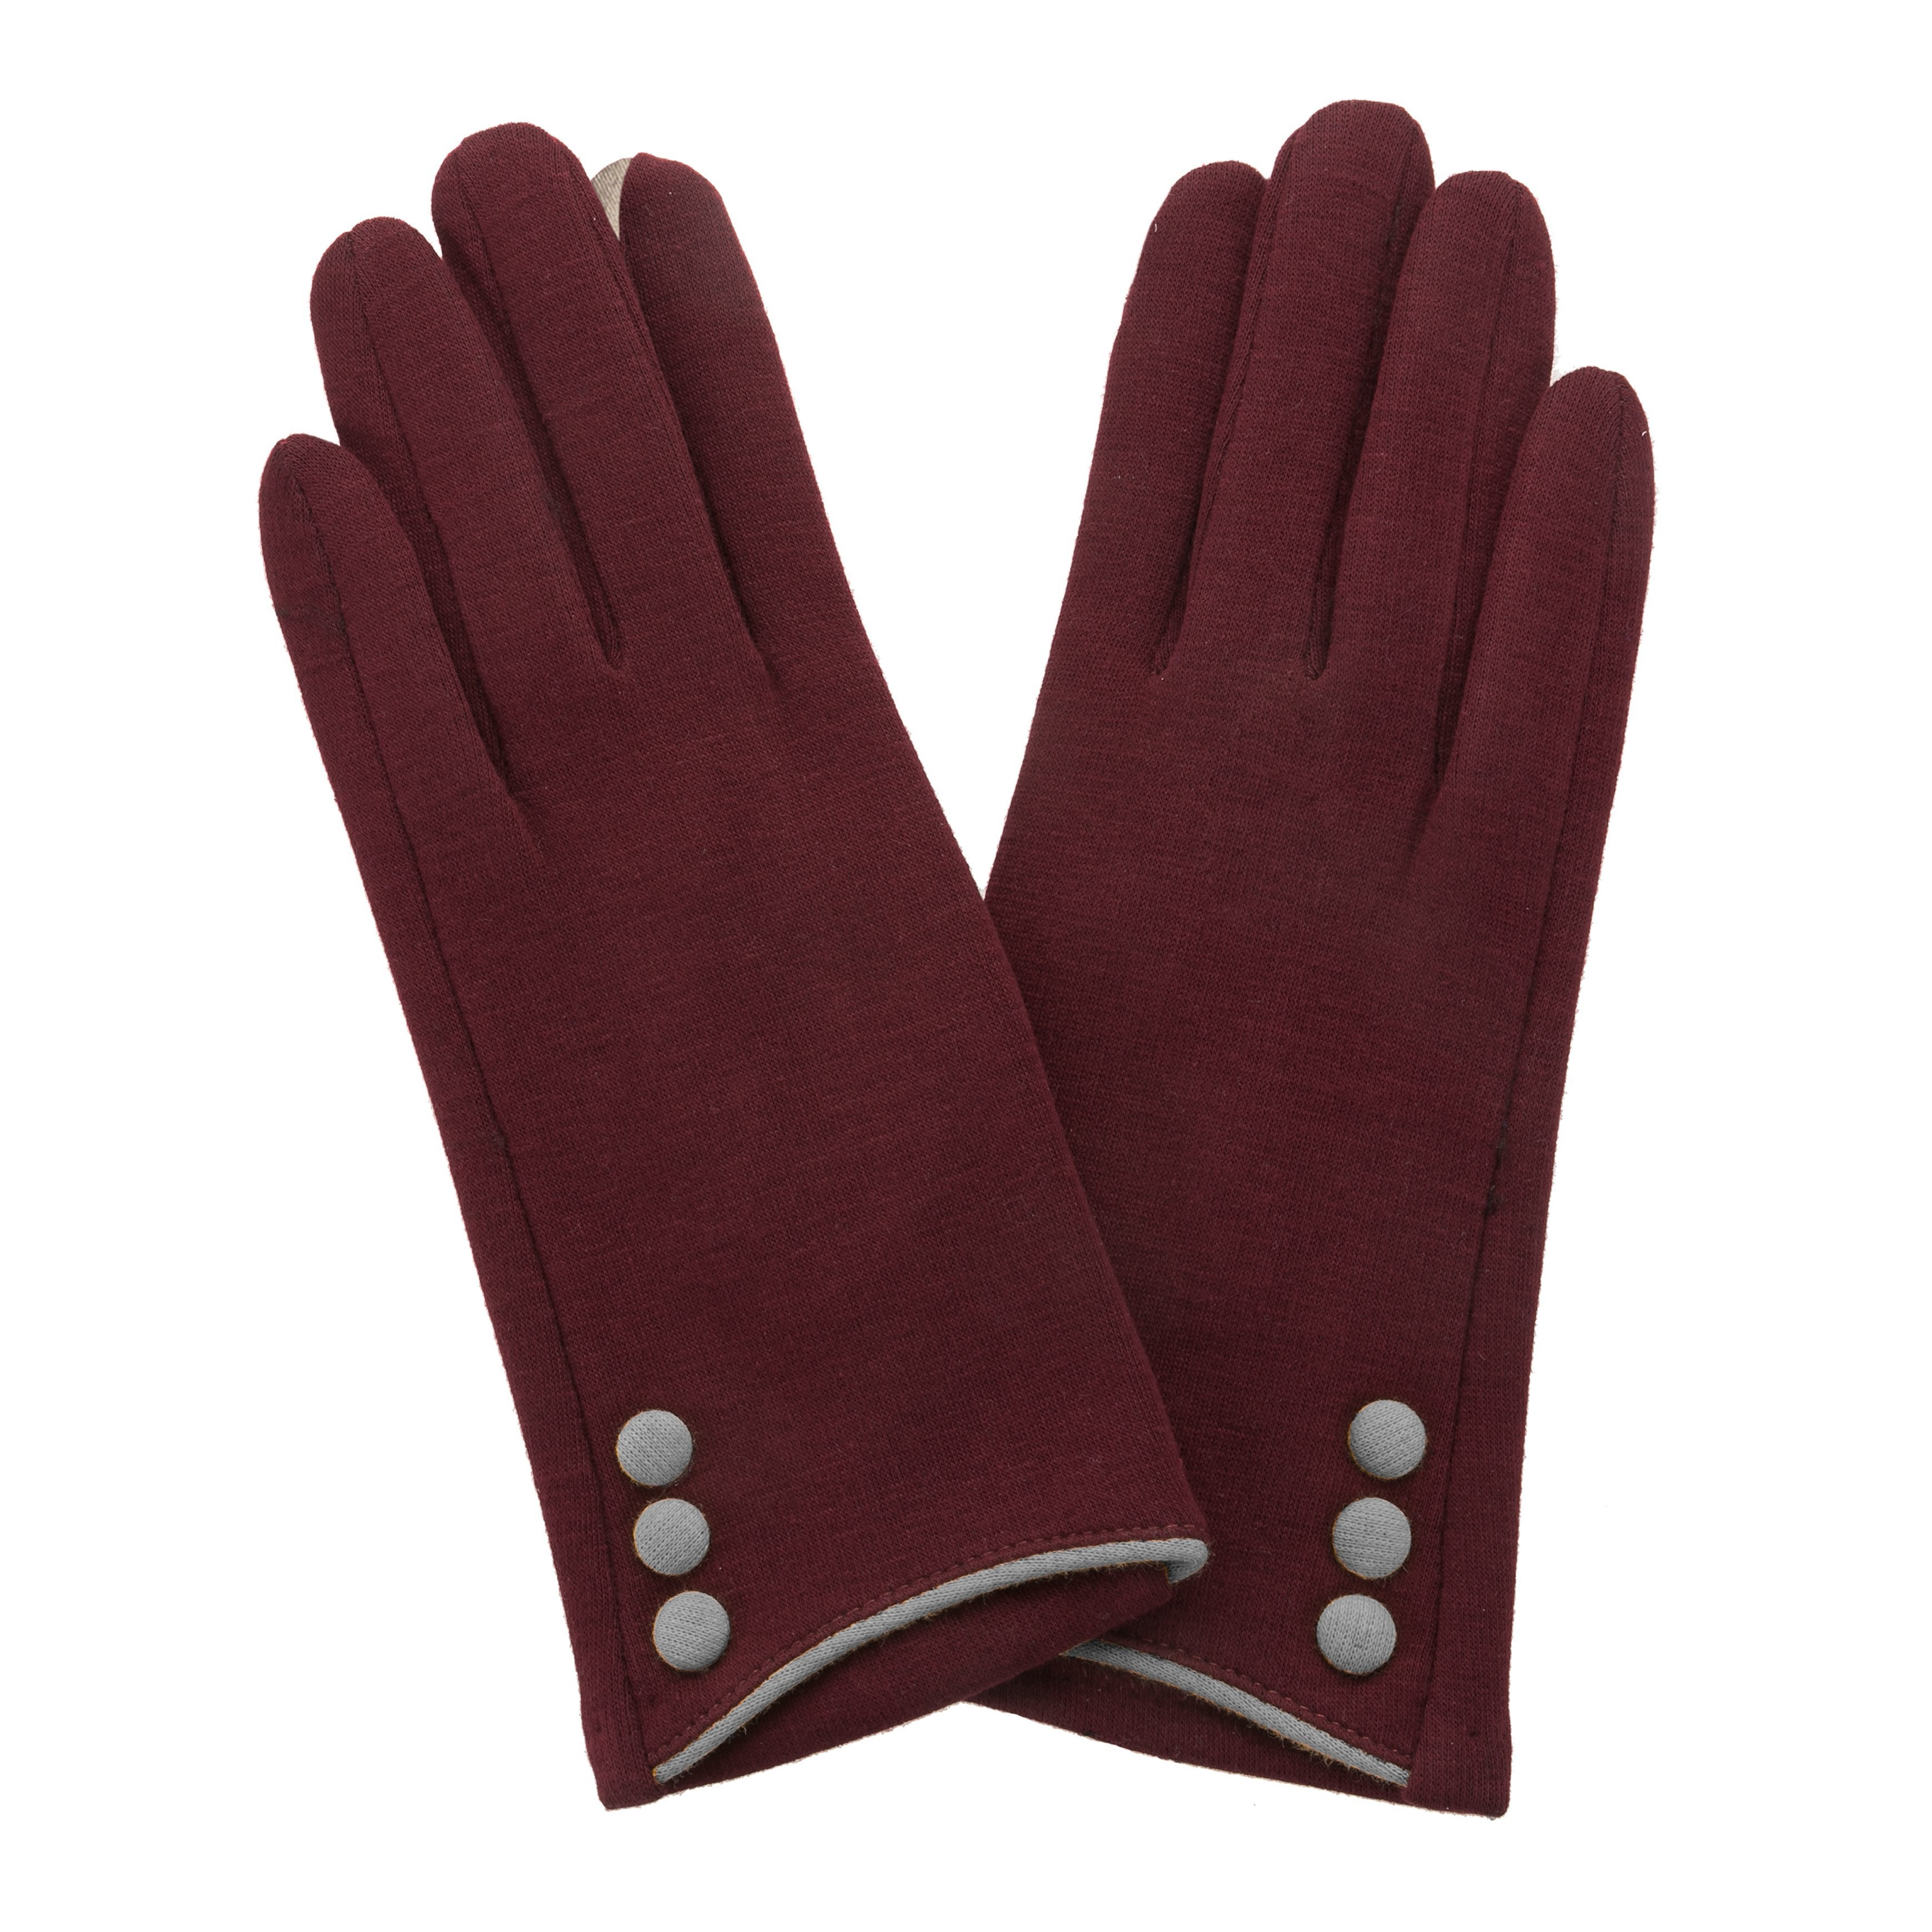 Maroon, smart screen fingertip gloves with grey buttons and trim.